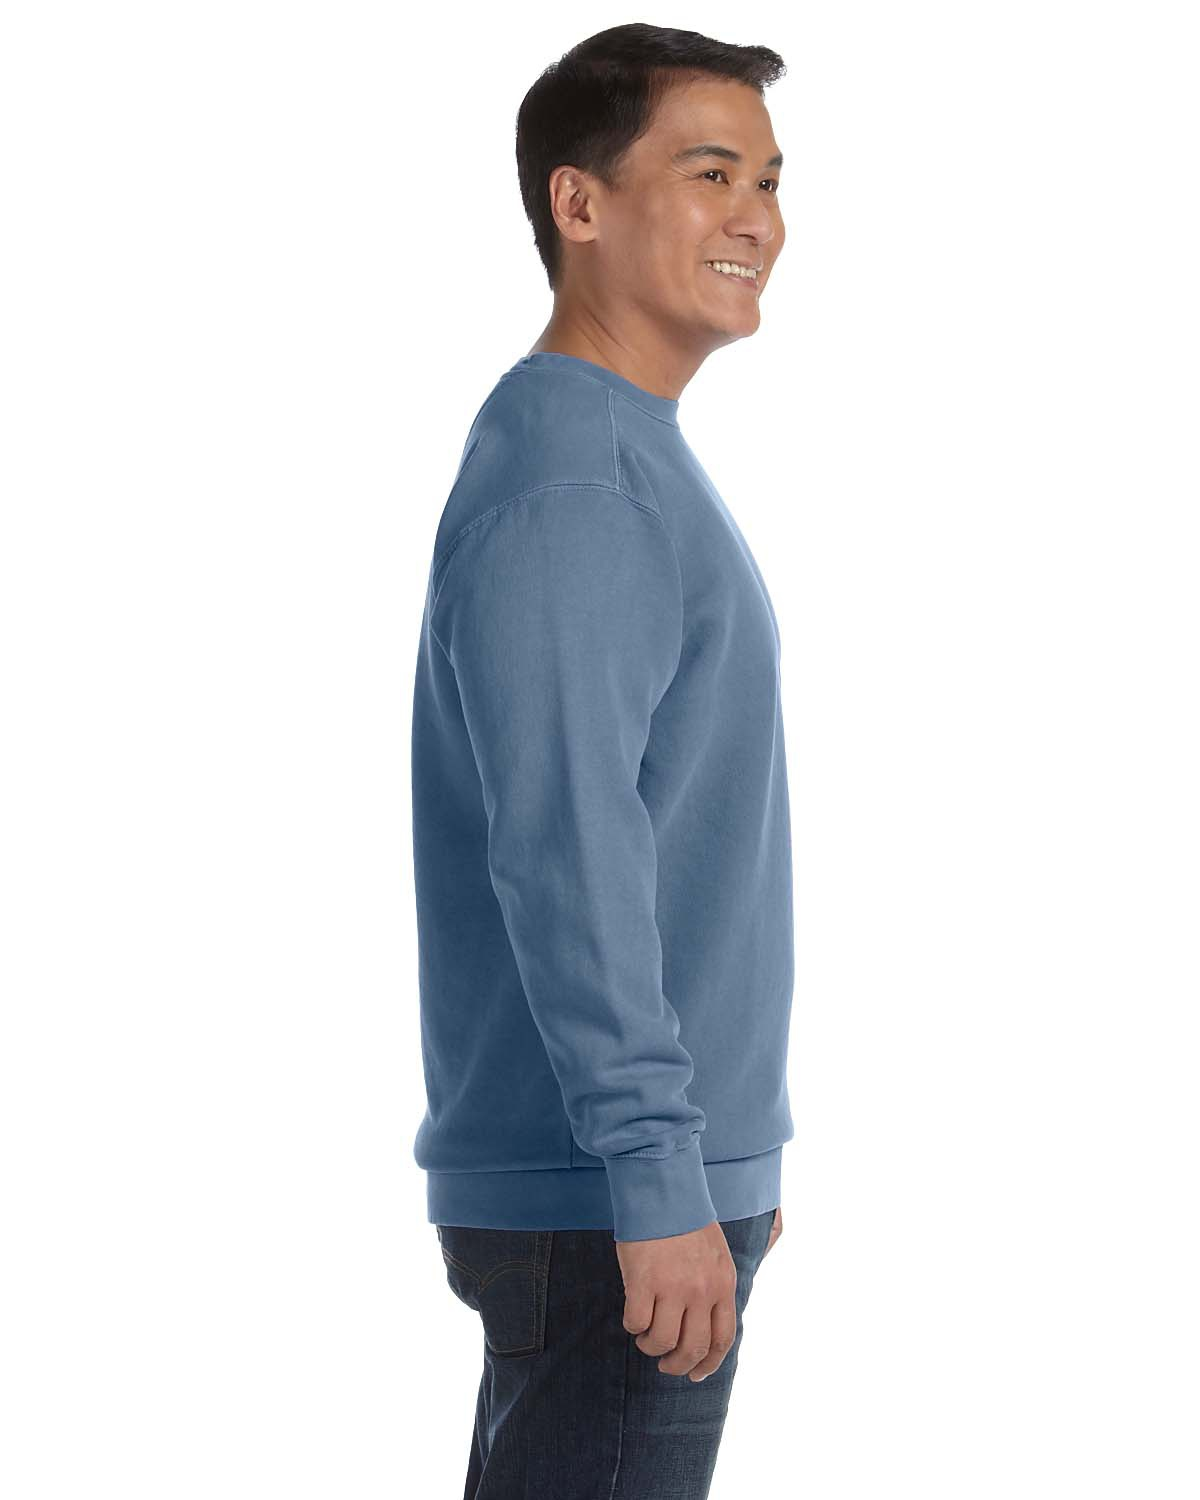 'Comfort Colors 1566 Adult Crewneck Sweatshirt'